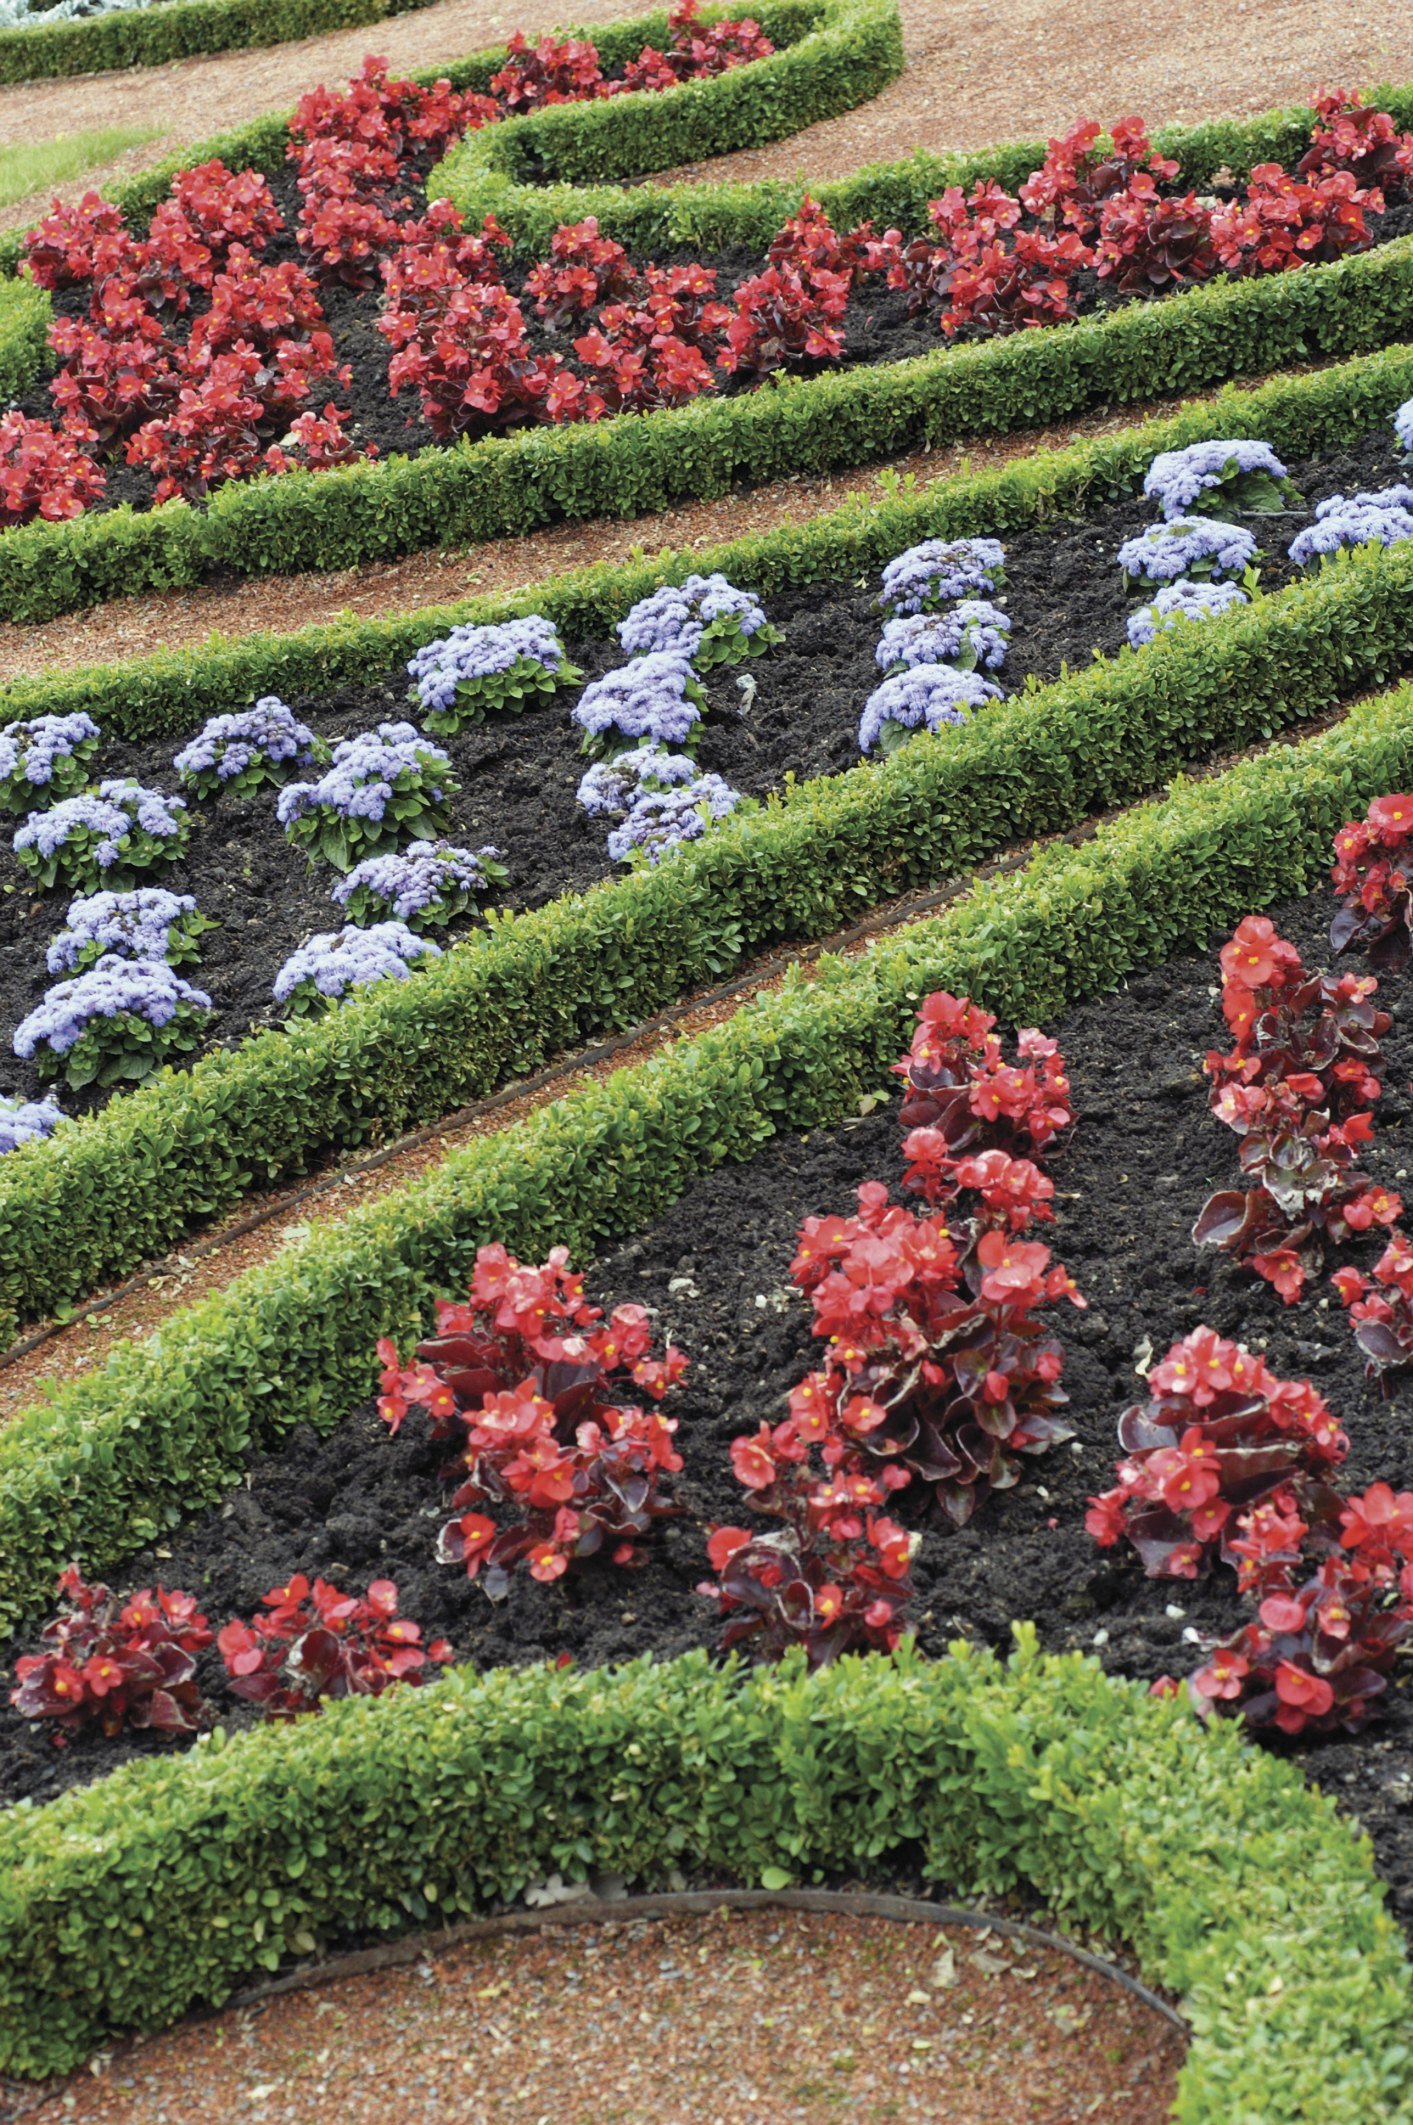 Hedge Bushes: What Fertilizer To Use For Boxwood Hedges?